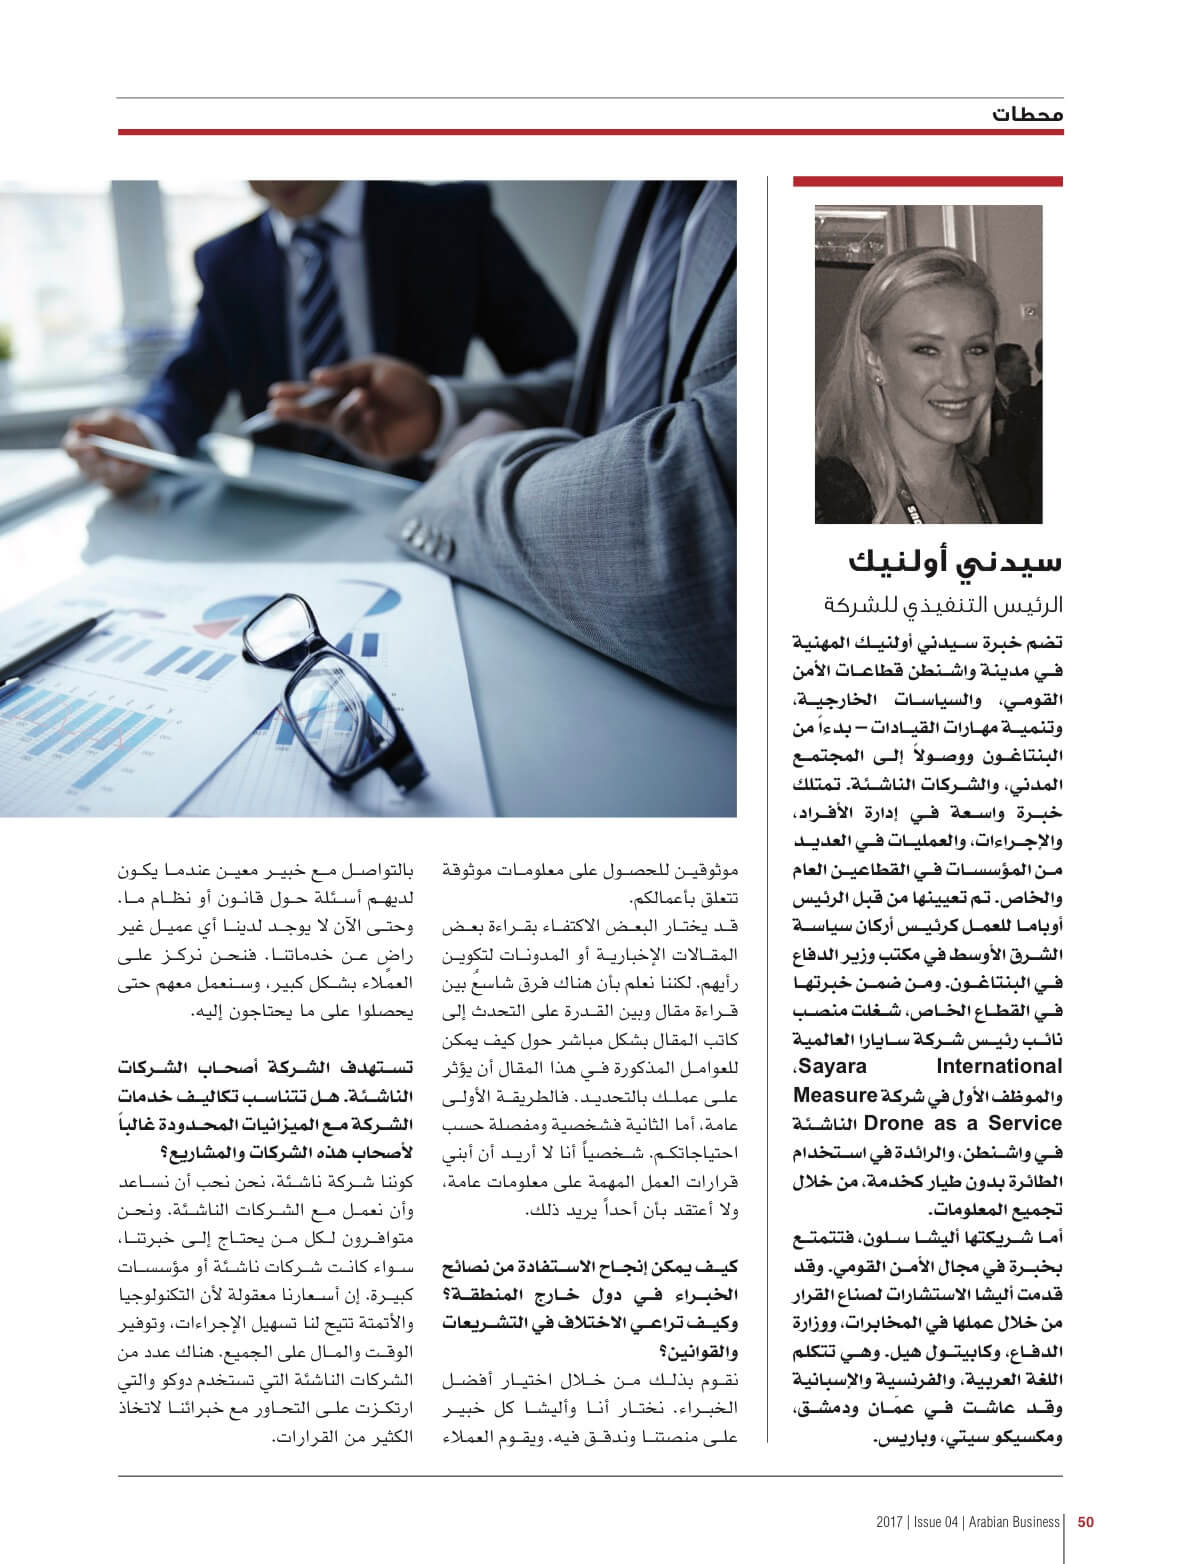 Arabian Business - January - Duco Beta - Page 48-51 copy 2